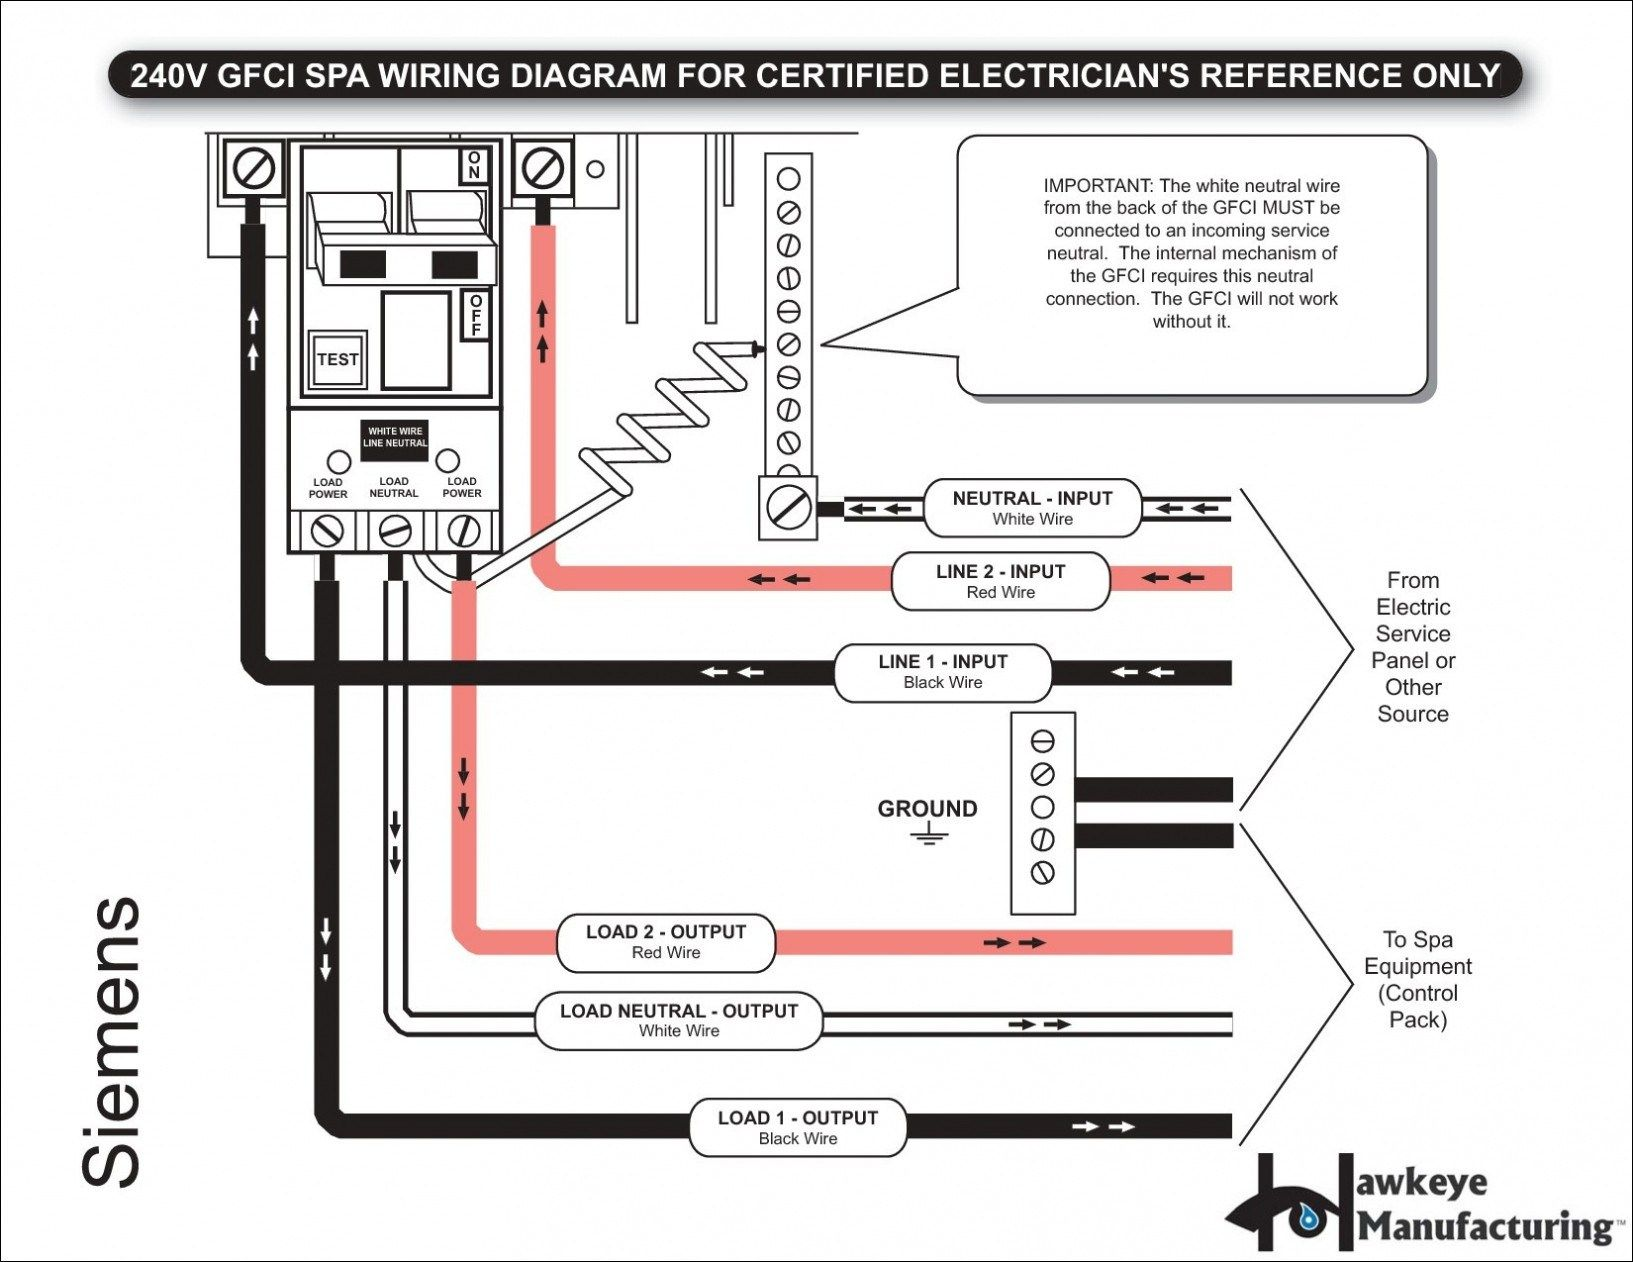 19 Stunning Circuit Breaker Wiring Diagram Https Bacamajalah Com 19 Stunning Circuit Breaker Wiring Diagram Breaker C Diagram Gfci Electrical Symbols